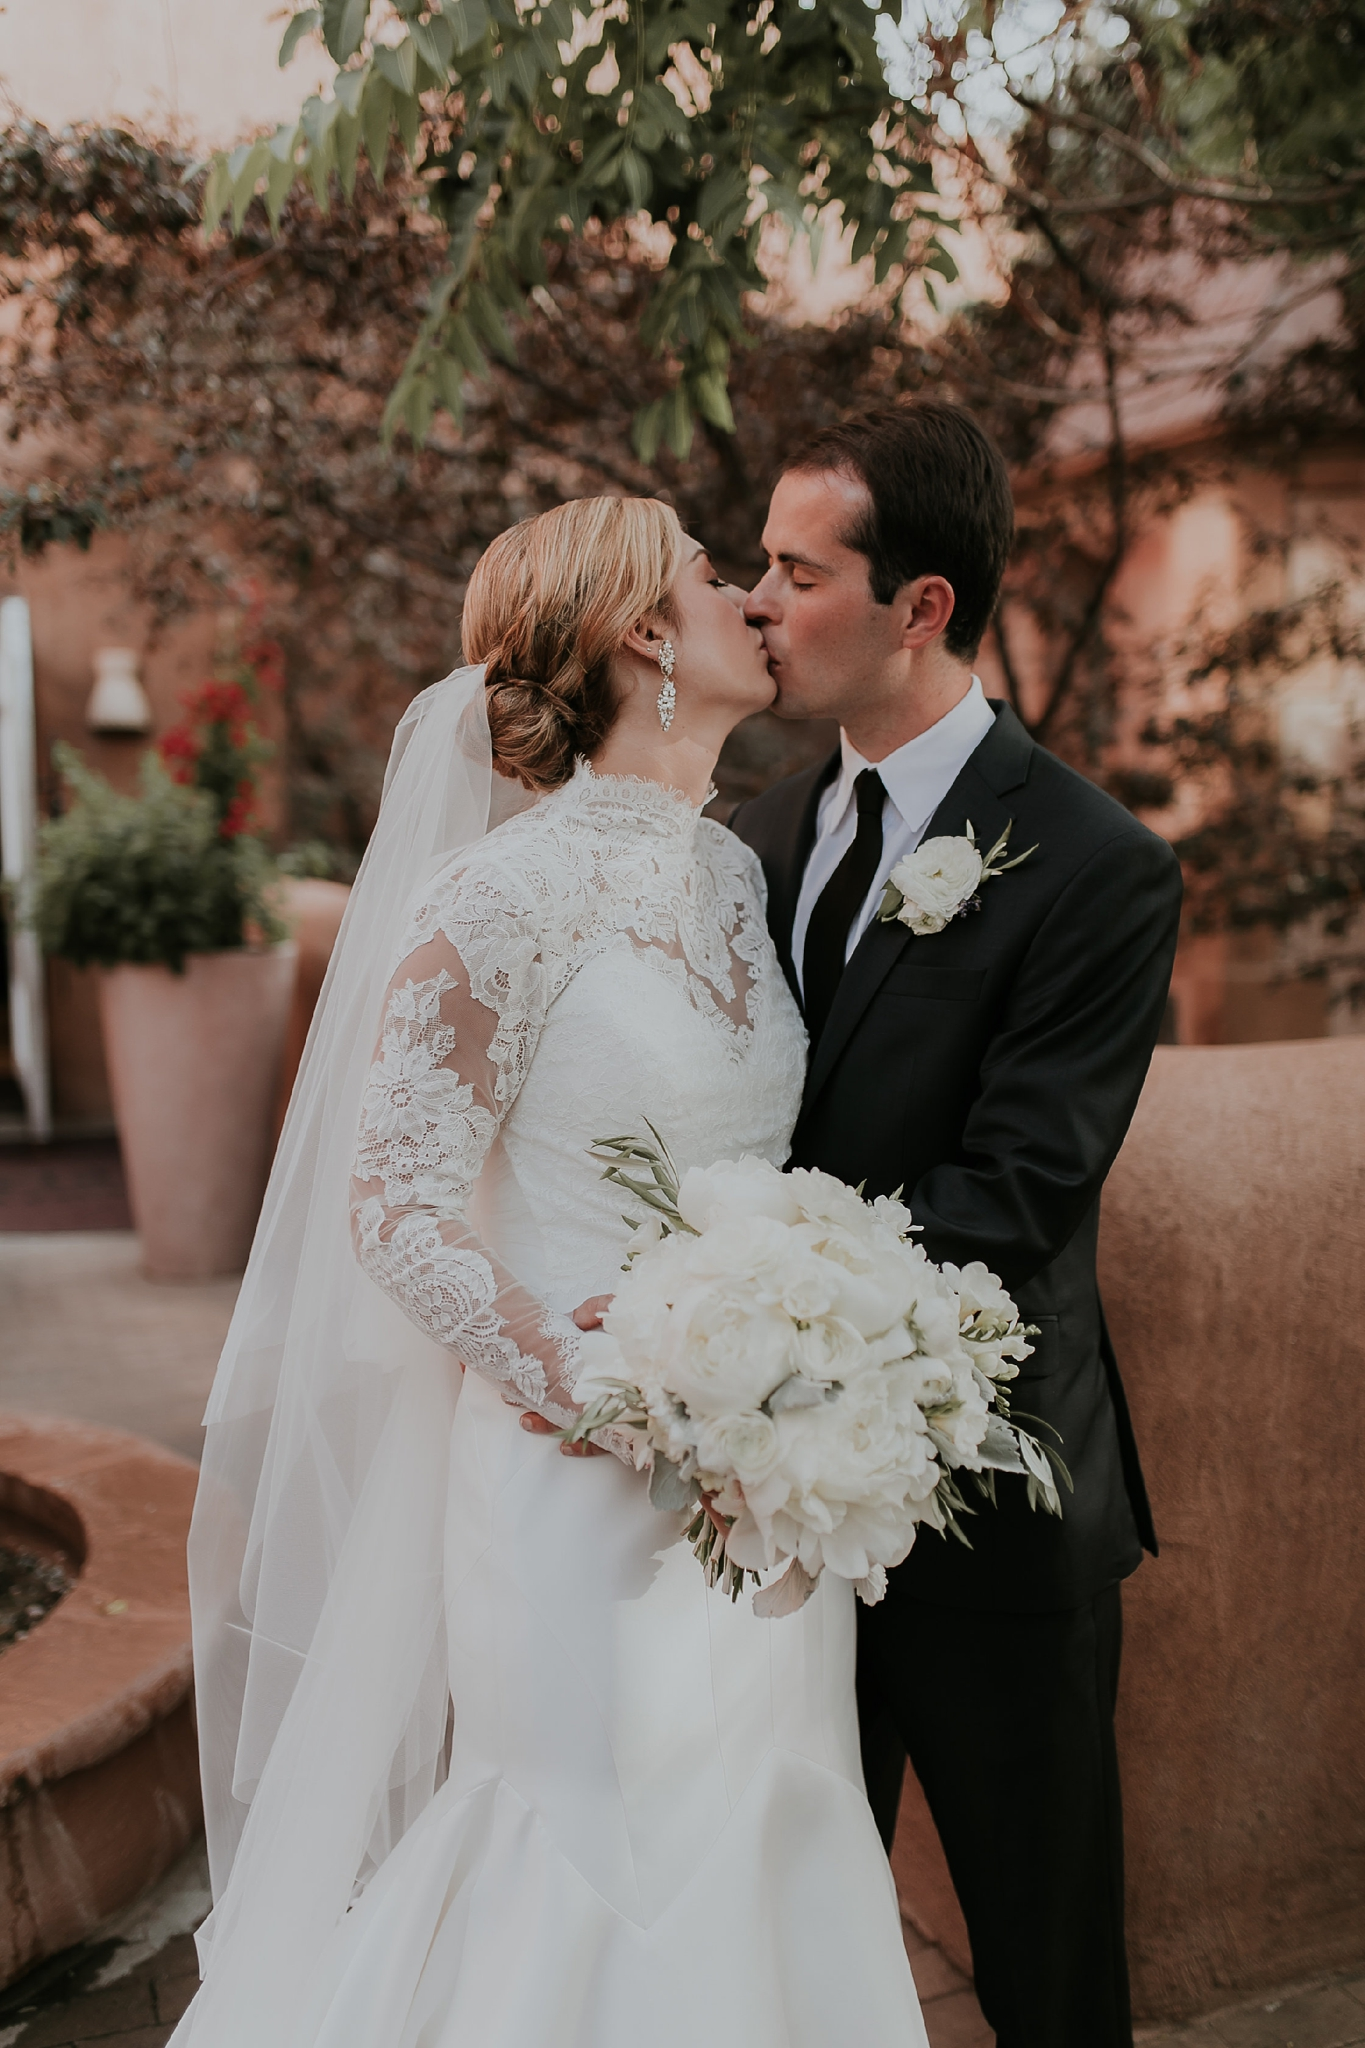 Alicia+lucia+photography+-+albuquerque+wedding+photographer+-+santa+fe+wedding+photography+-+new+mexico+wedding+photographer+-+new+mexico+wedding+-+wedding+planner+-+just+lovely+weddings+-+new+mexico+wedding+planner_0141.jpg